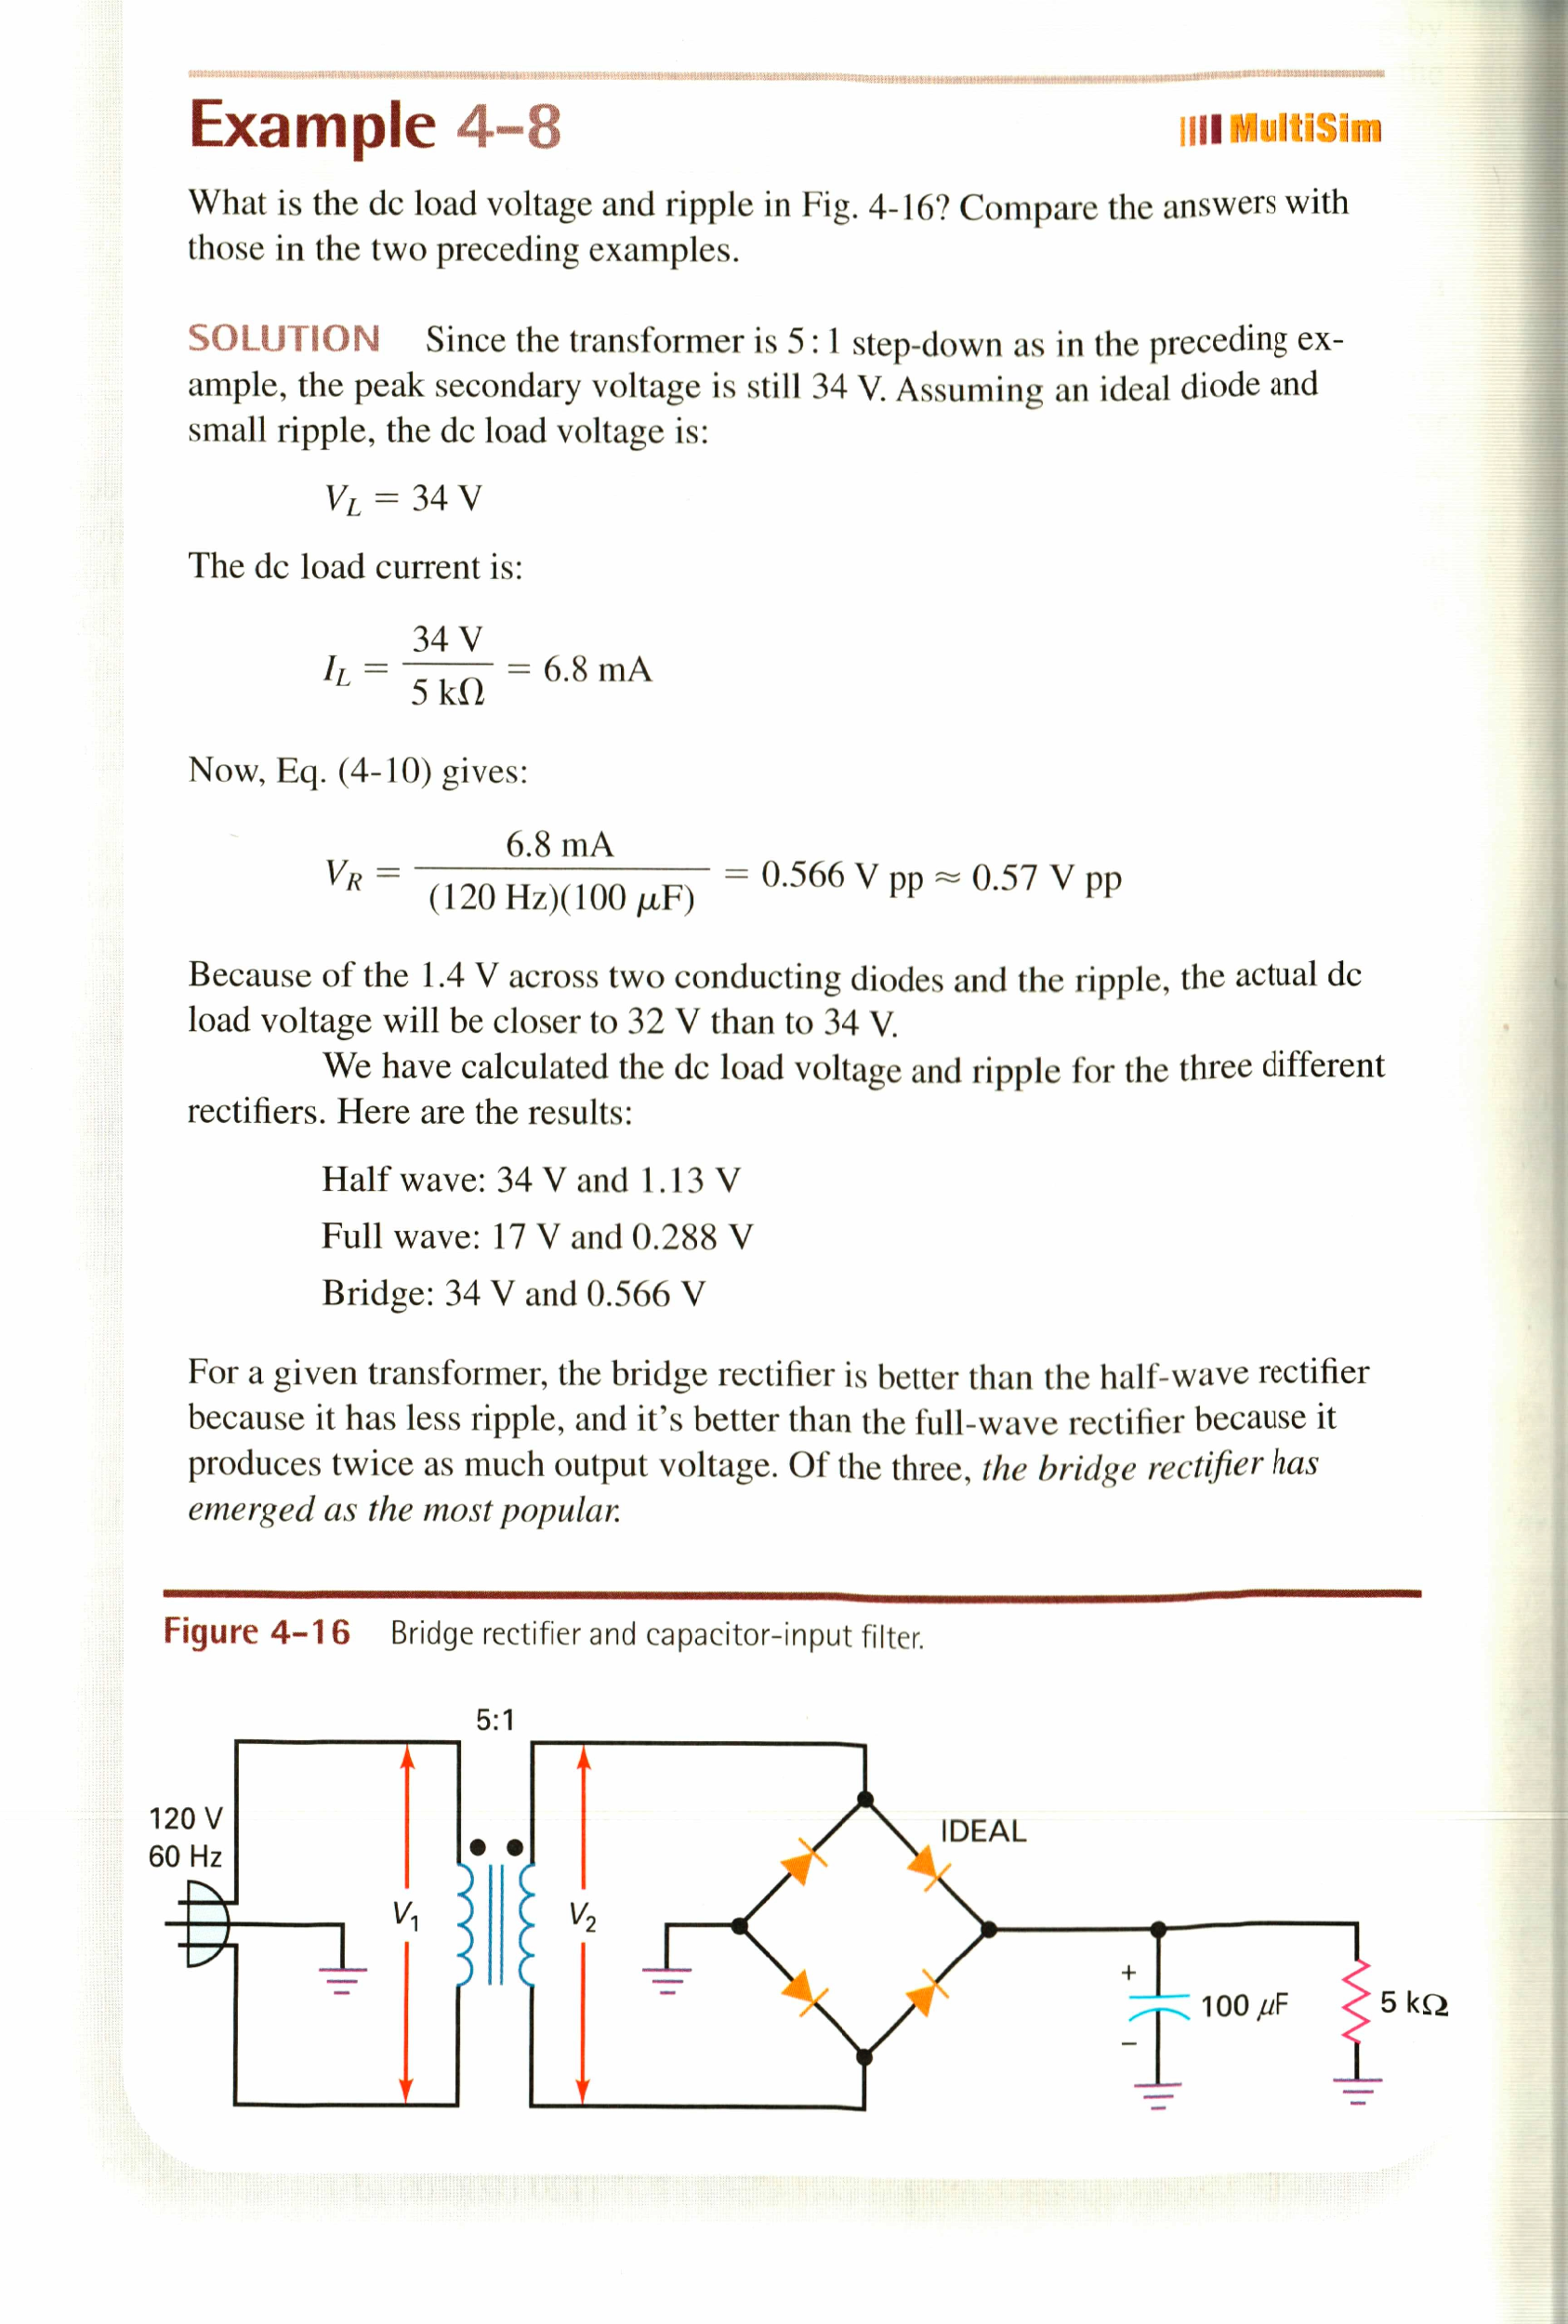 What is the dc load voltage and ripple in Fig. 4-1